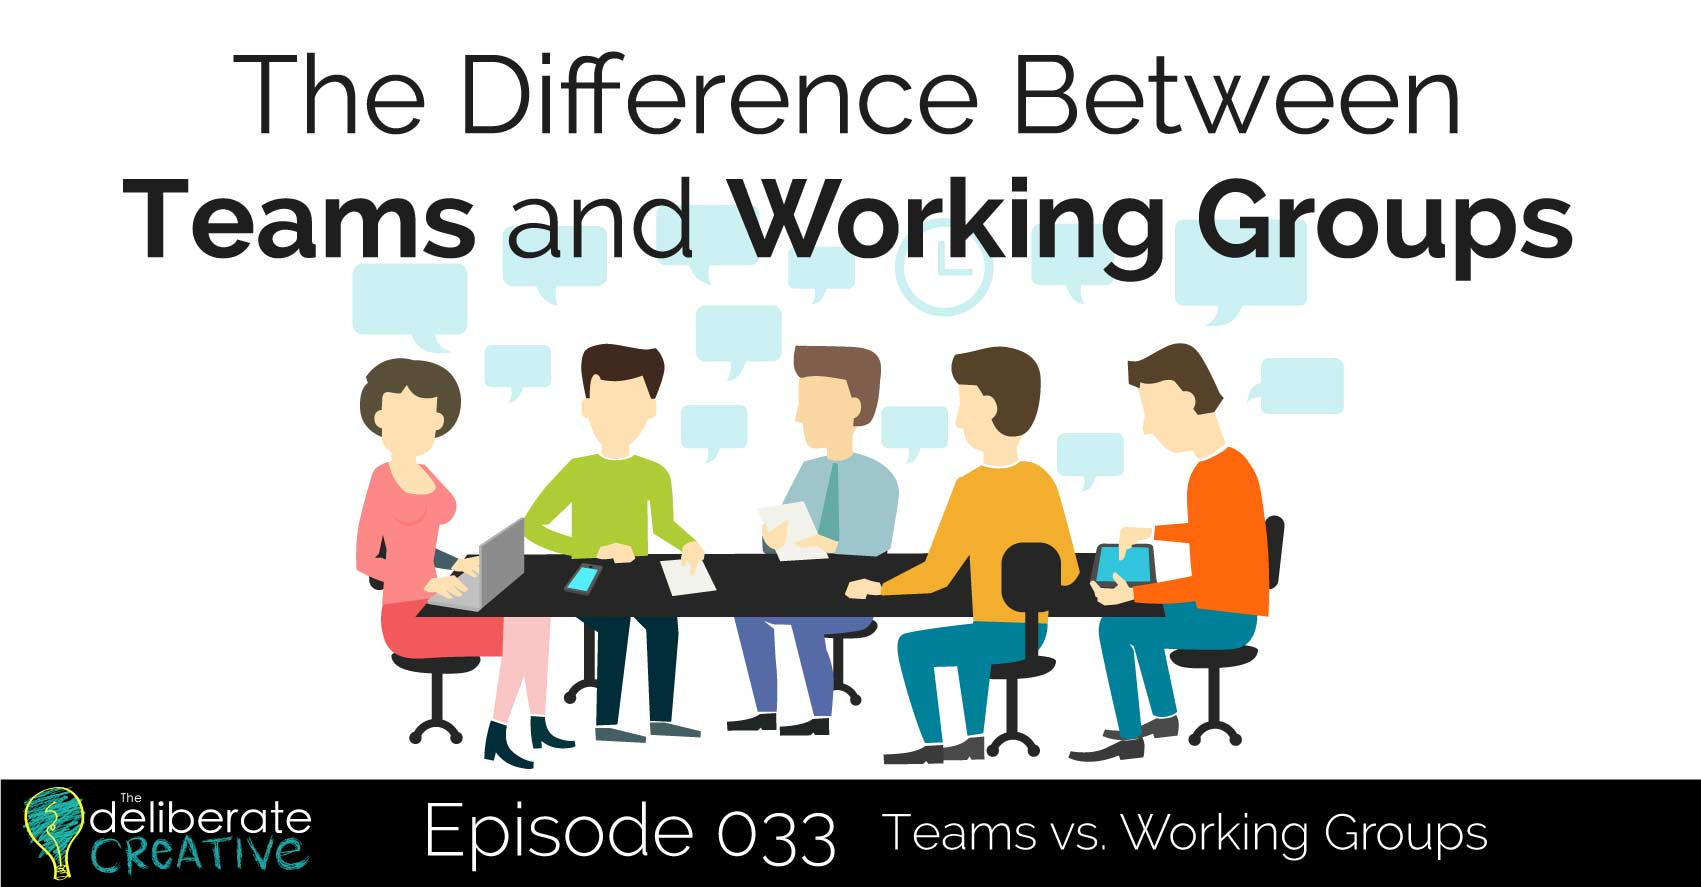 The Difference Between Teams and Working Groups